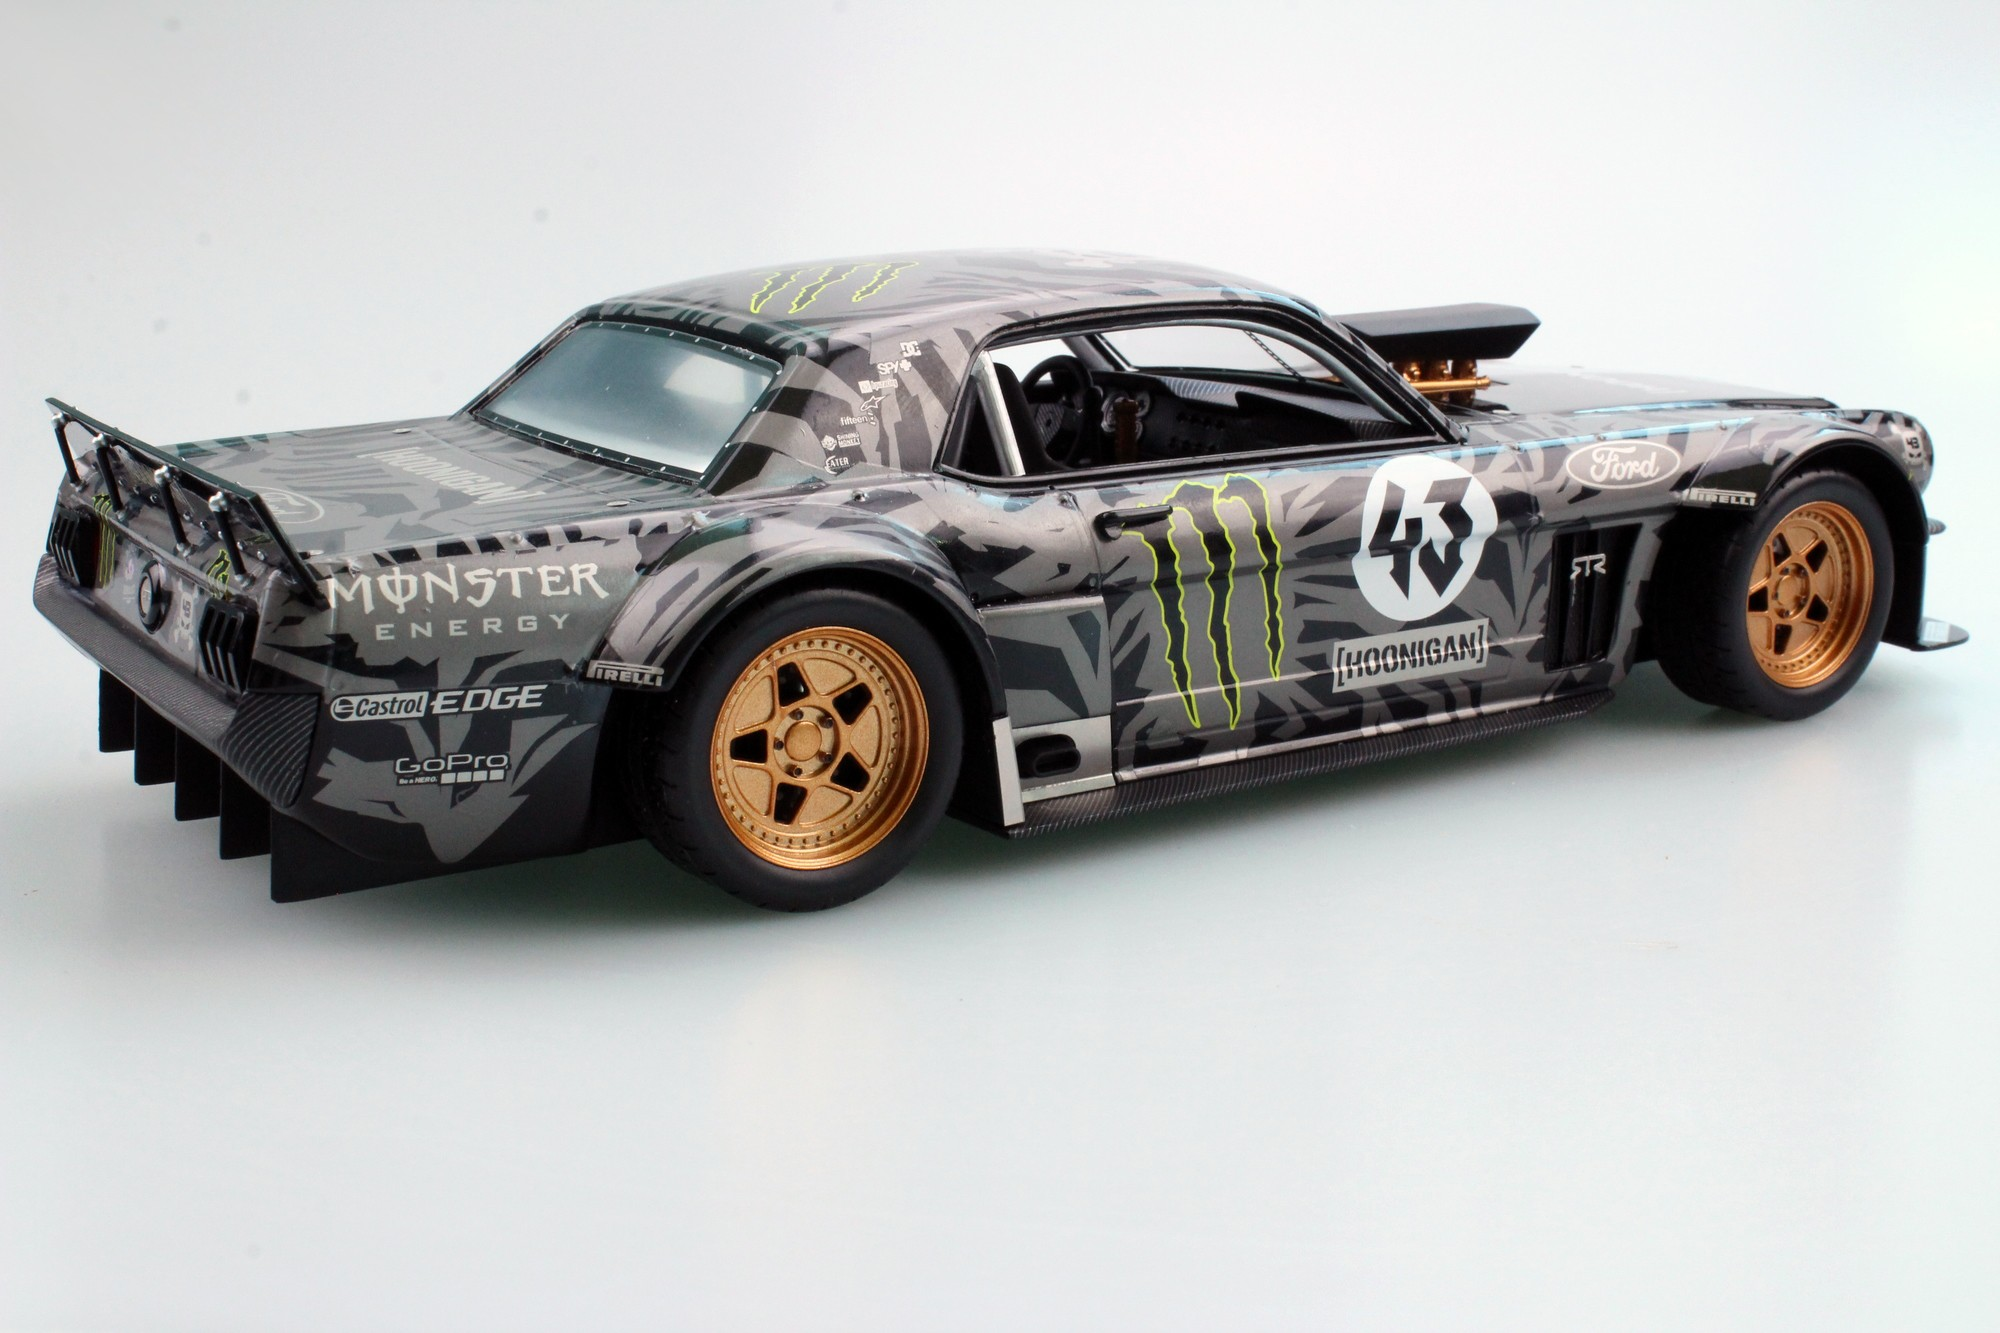 Top Marques Collectibles Ford Mustang 1965 Hoonigan Ken